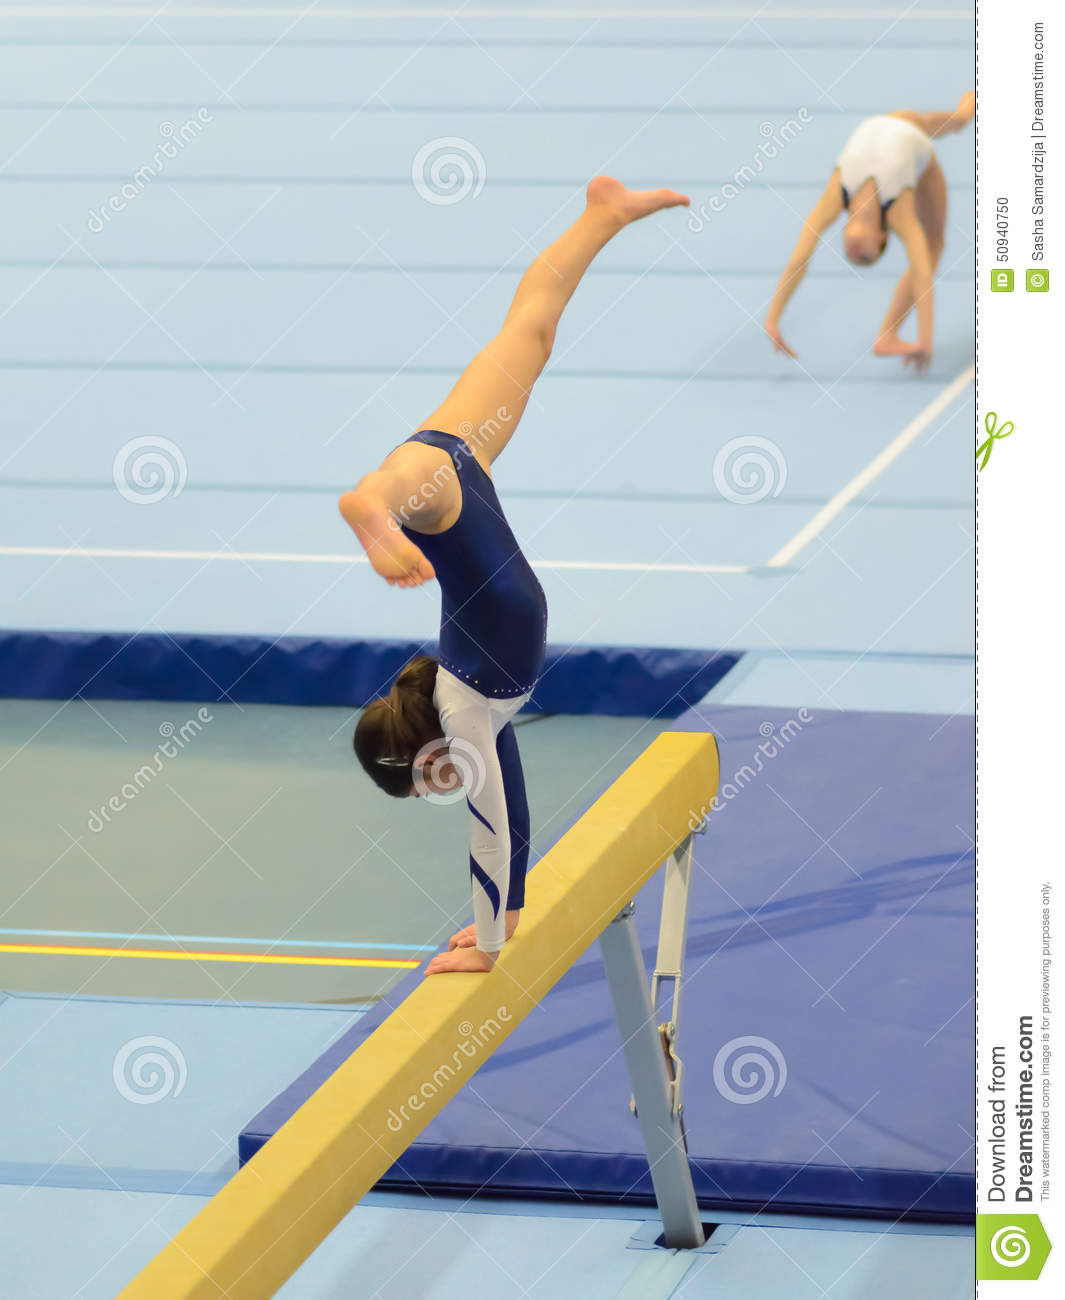 Young Gymnast Girl Performing Routine On Balance Beam -8766